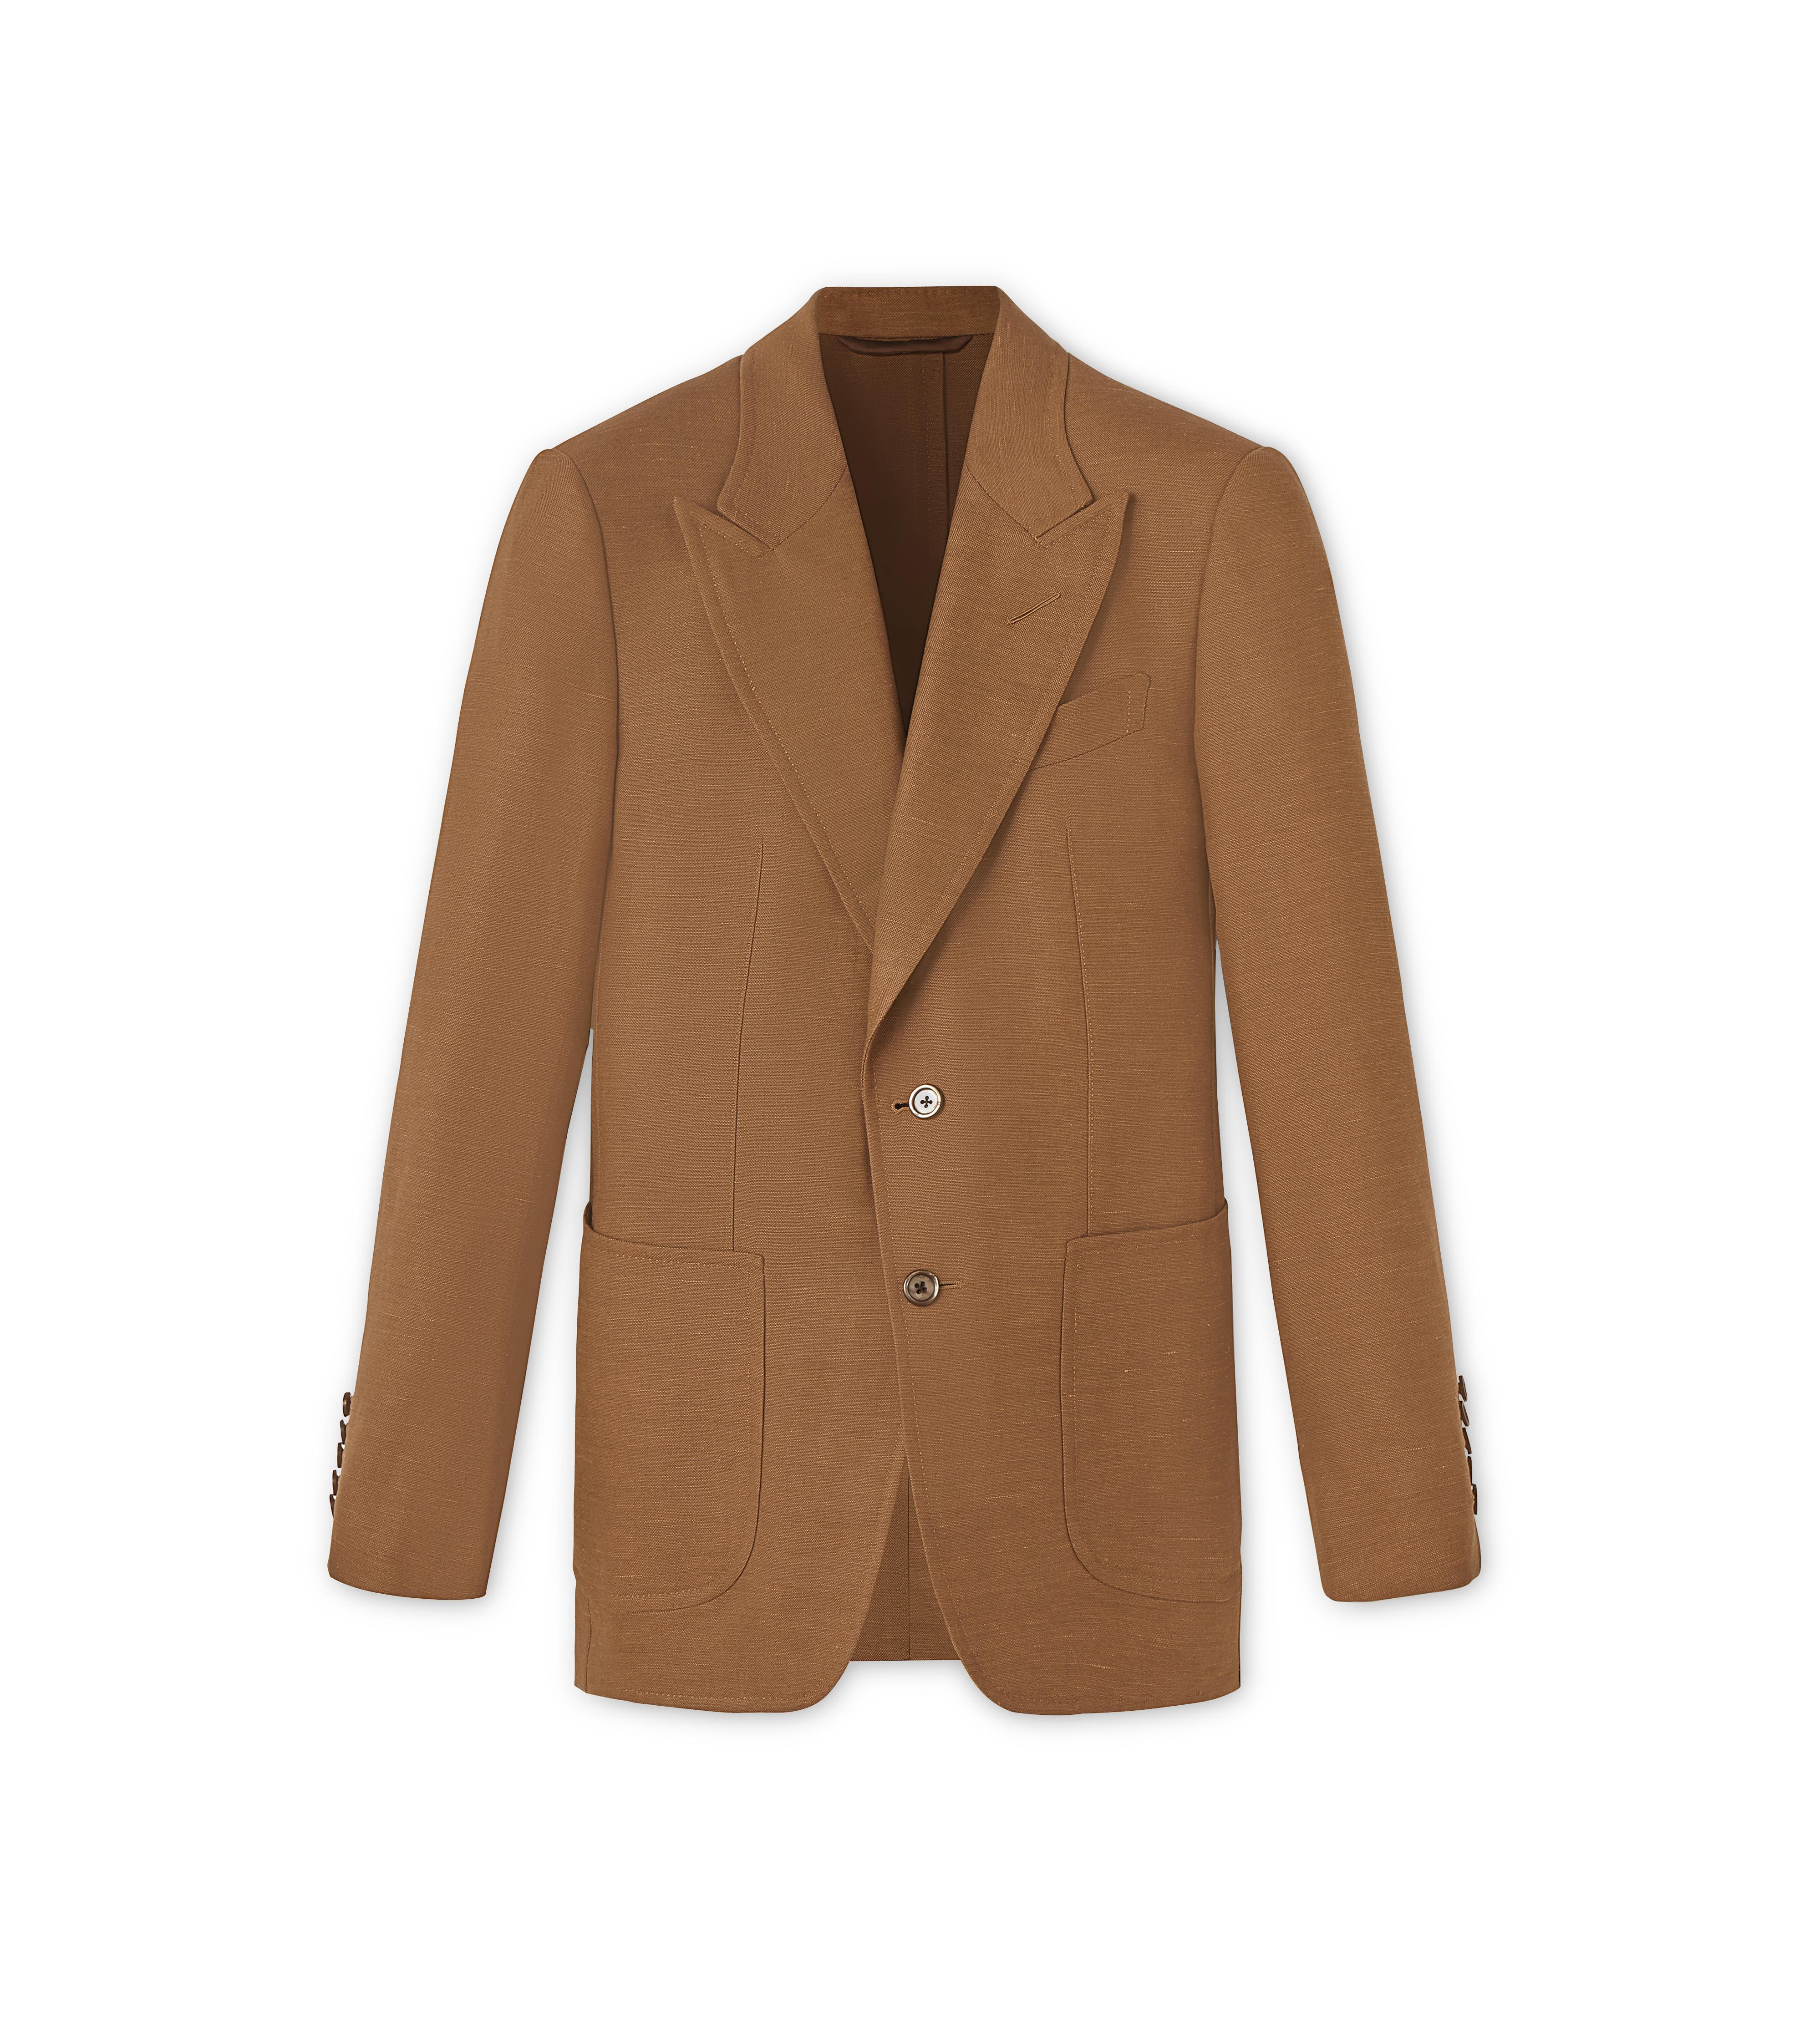 WOOL LINEN AND MOHAIR CANVAS SHELTON LIGHT CONSTRUCTION JACKET A thumbnail